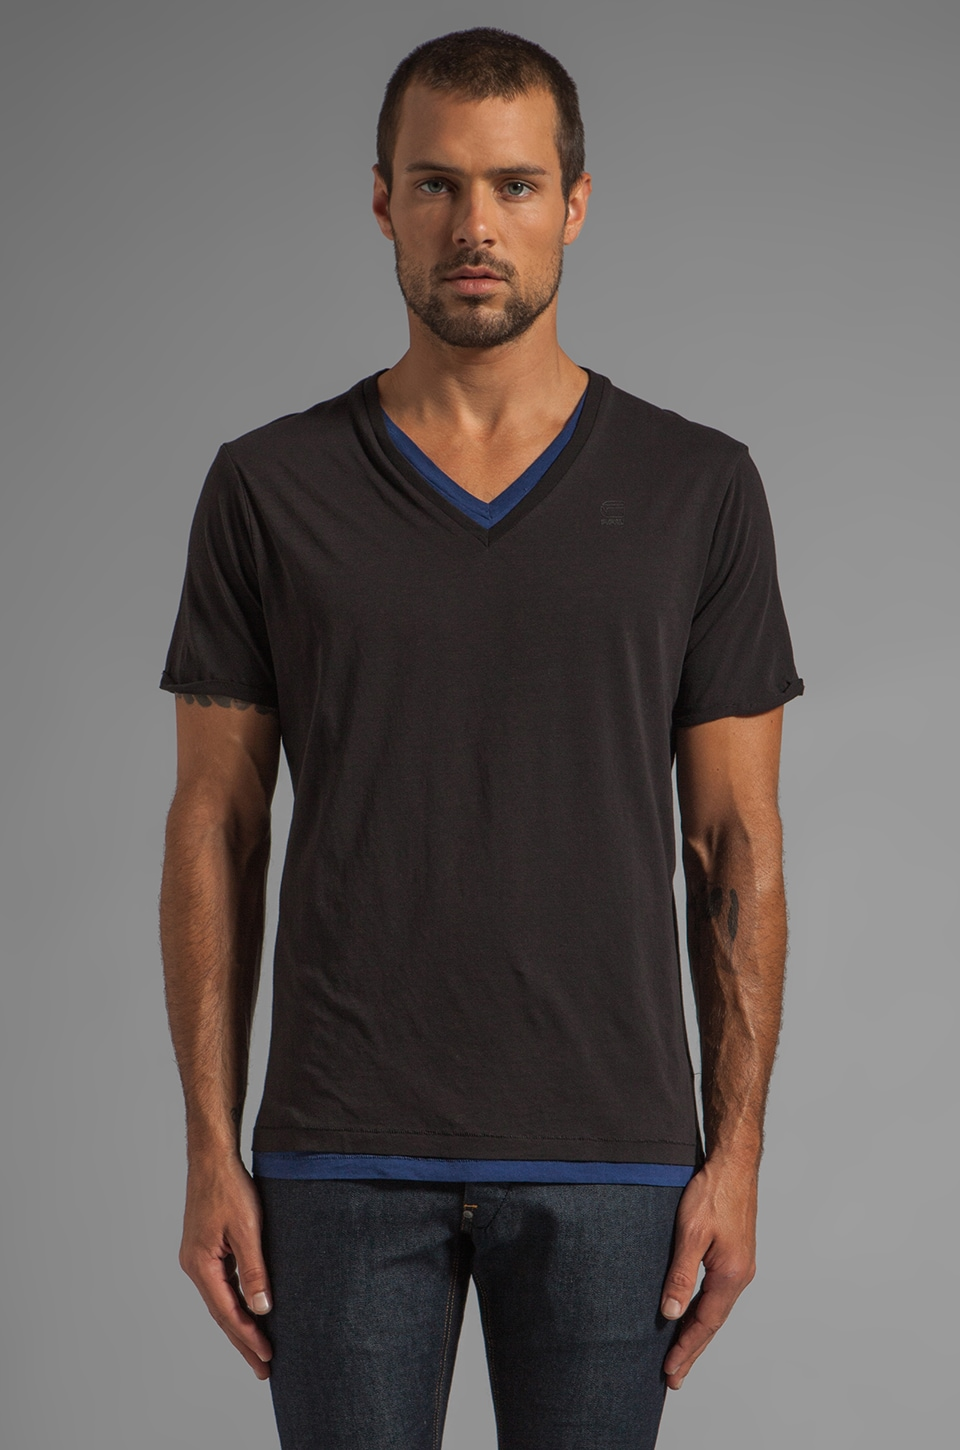 G-Star Correct Roy Tee in Black